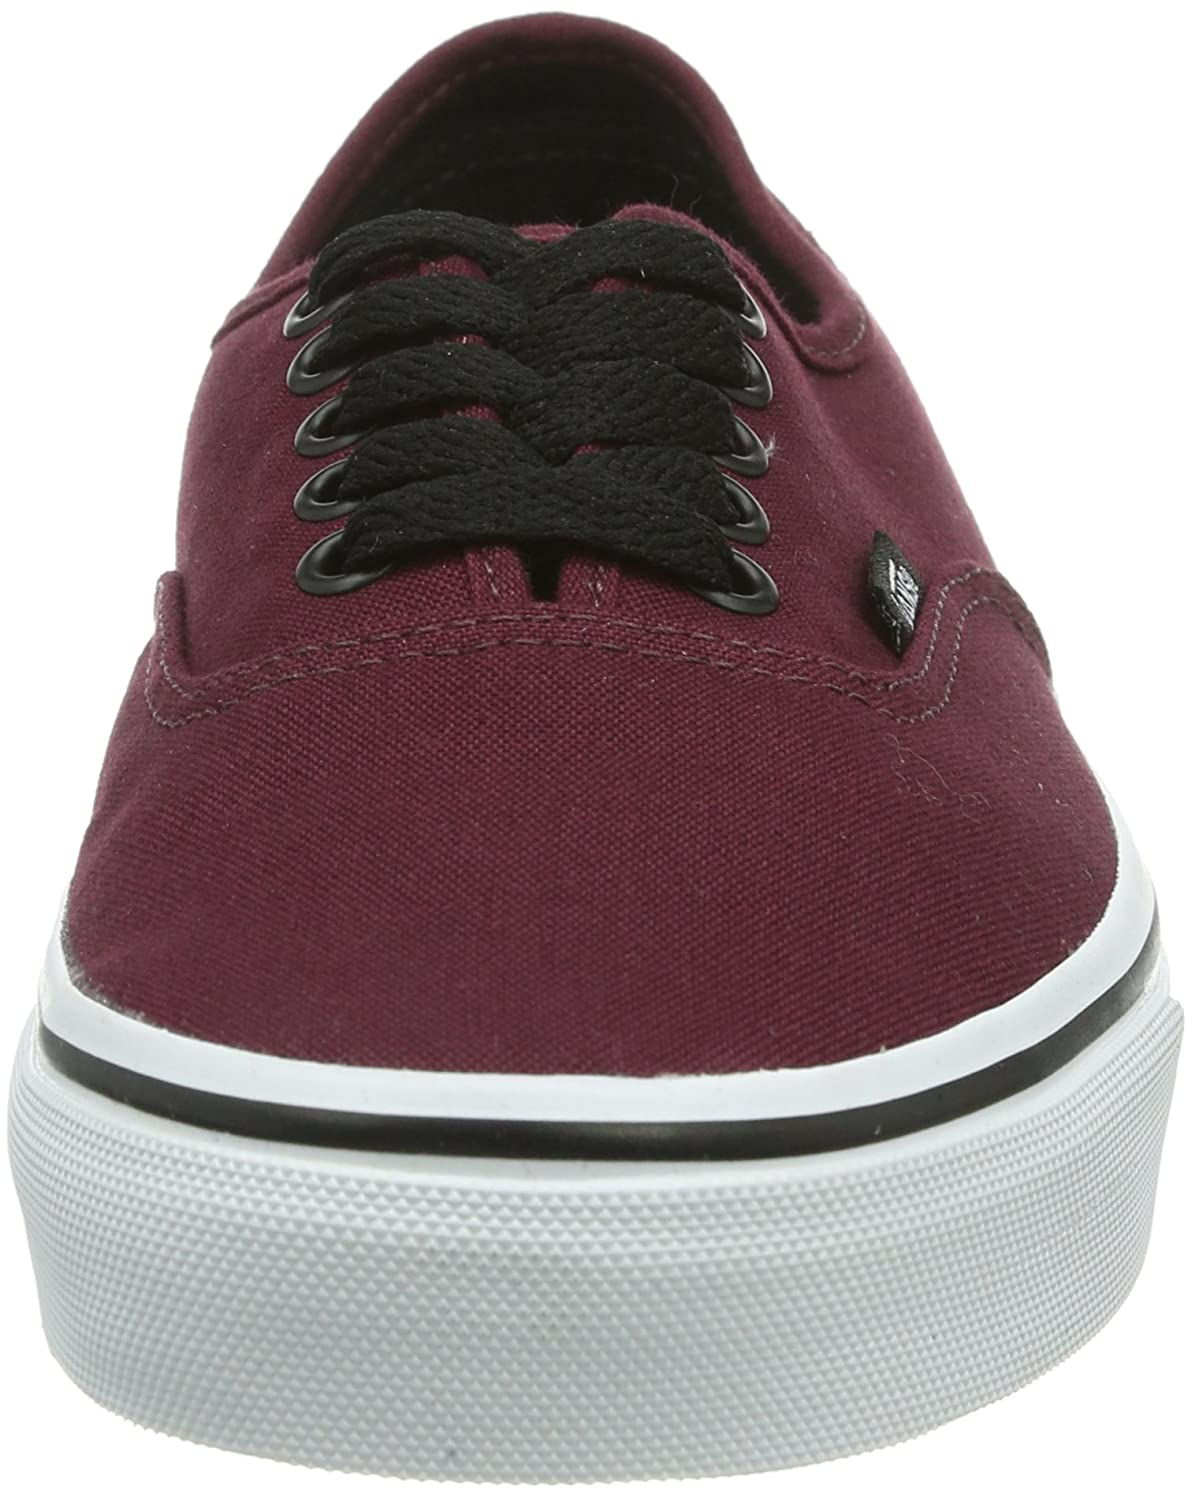 Vans U Authentic Baskets Mode Mixte Adulte: : Chaussures et Sacs